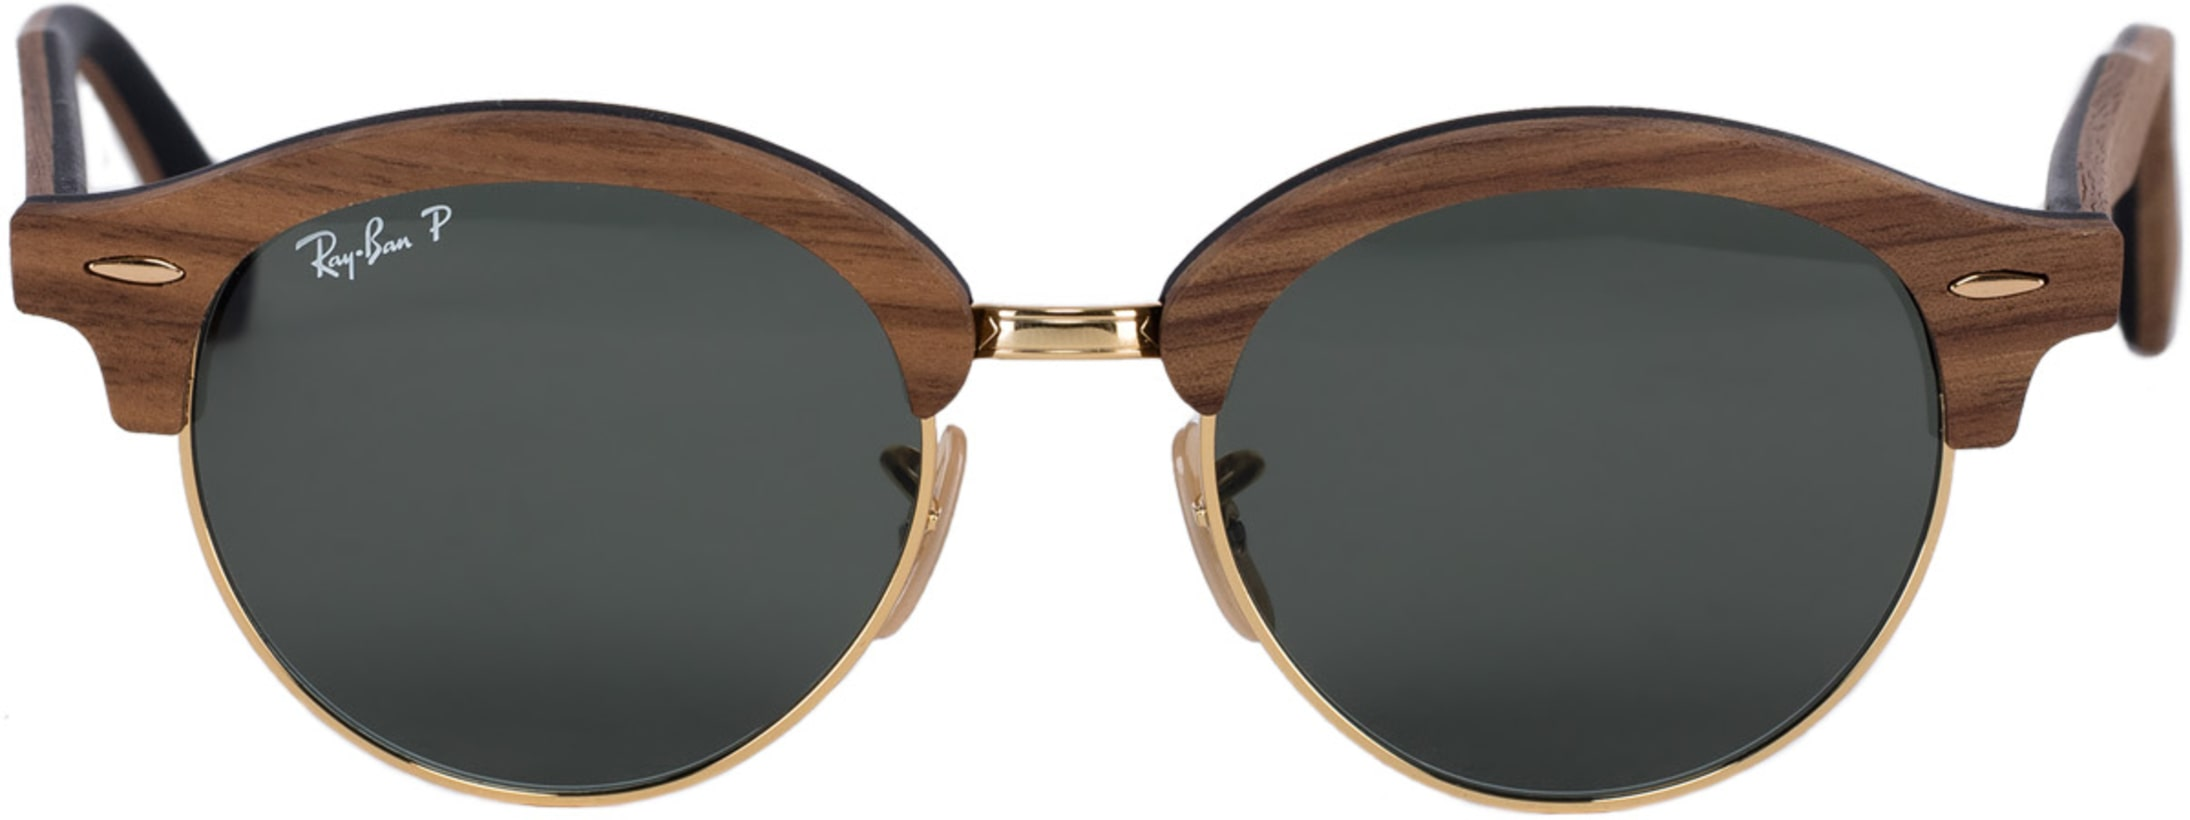 430e93bd4 Ray-Ban: Clubround Wood Sunglasses - Brown/Green Classic G-15 ...